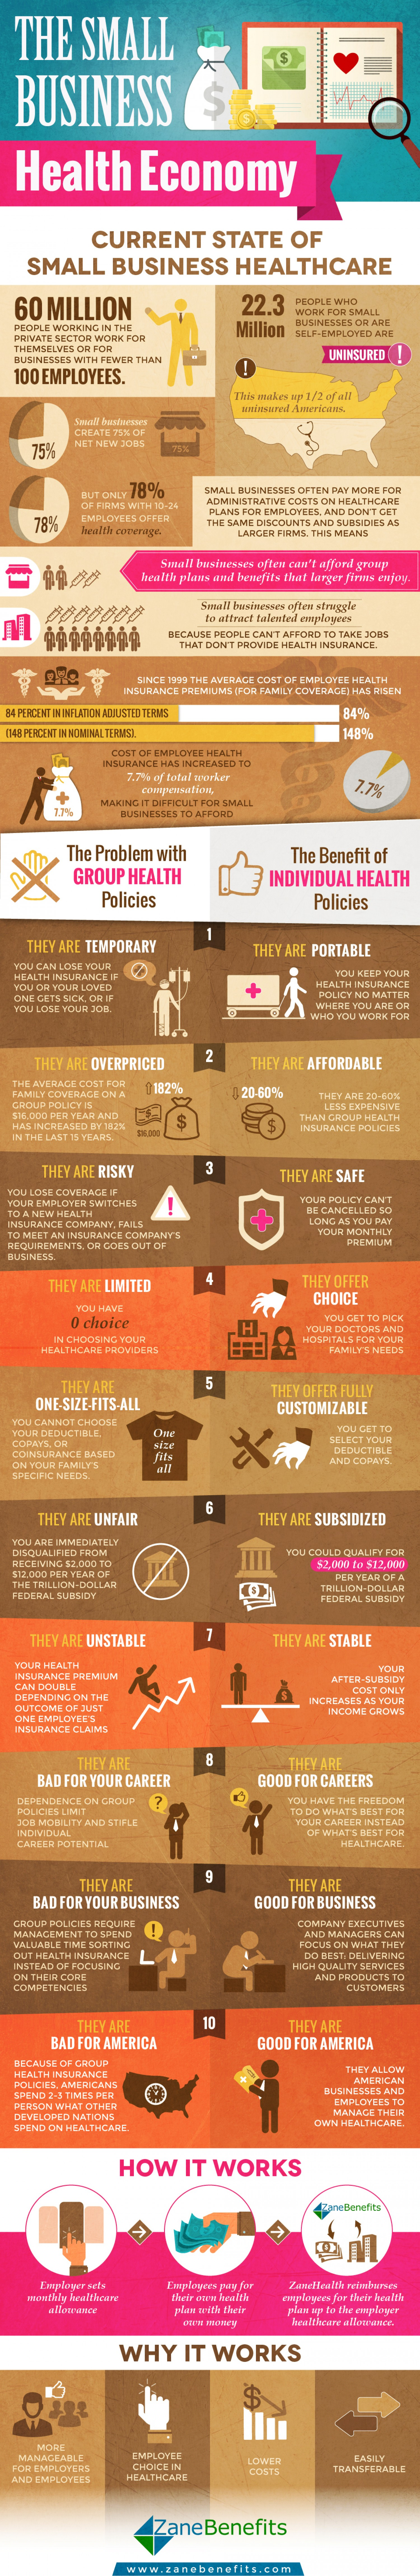 Infographic - The Small Business Health Economy